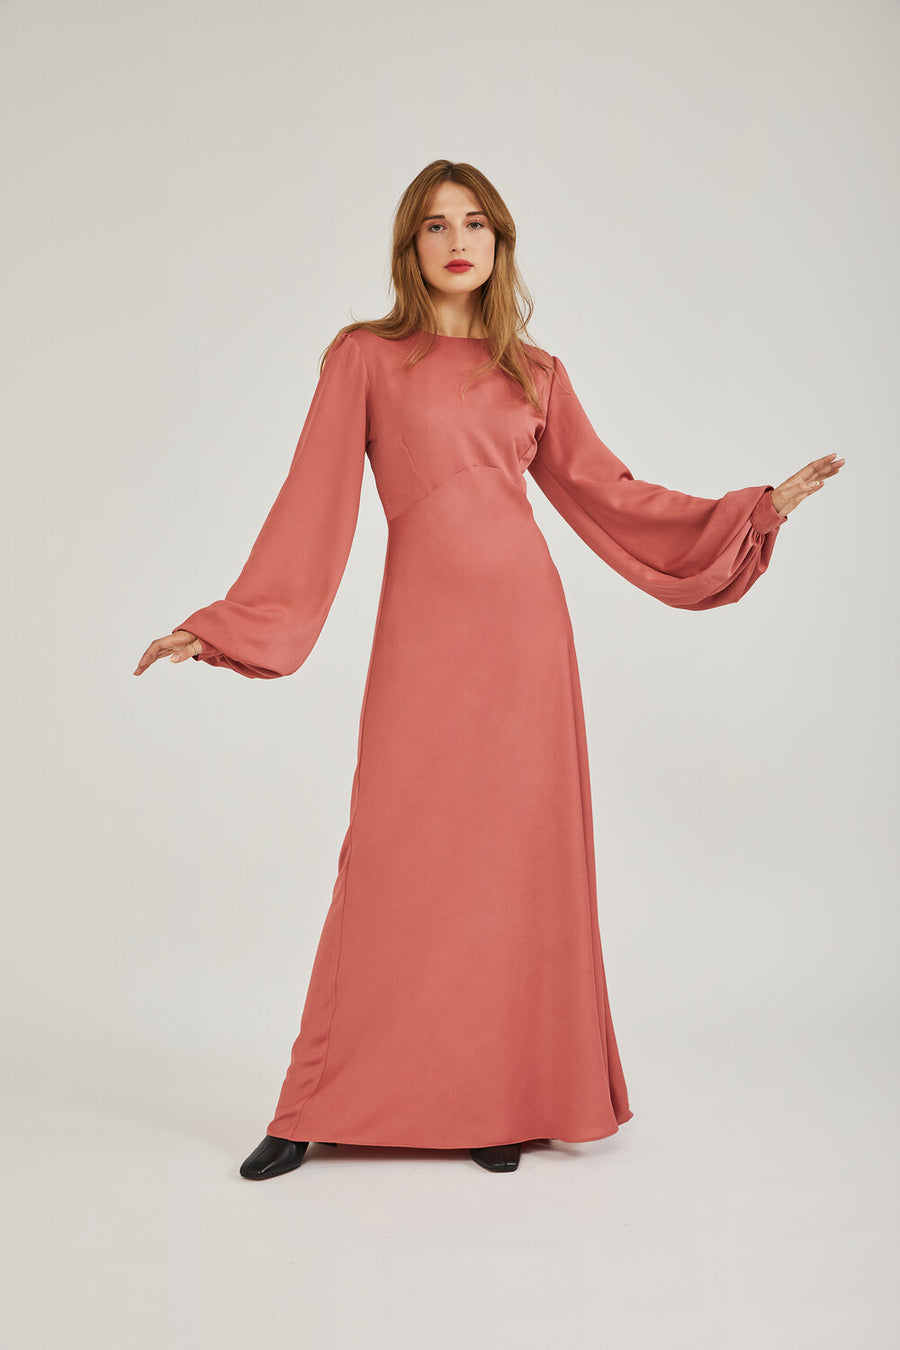 Wendy Satin Dress in Coral